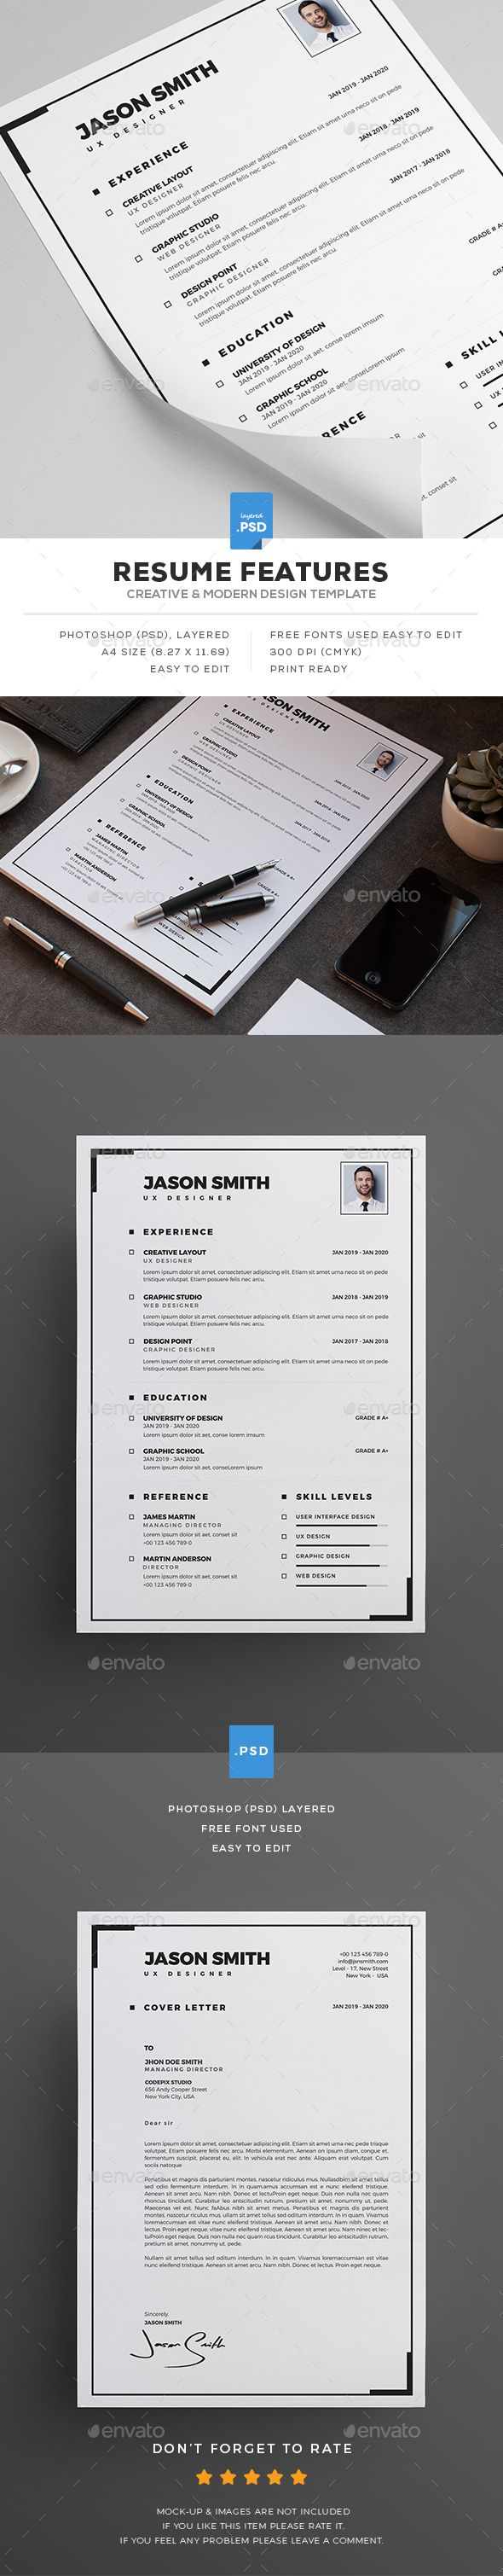 medical billing resumes%0A Clean  Resume  Resumes  Stationery Download here  https   graphicriver